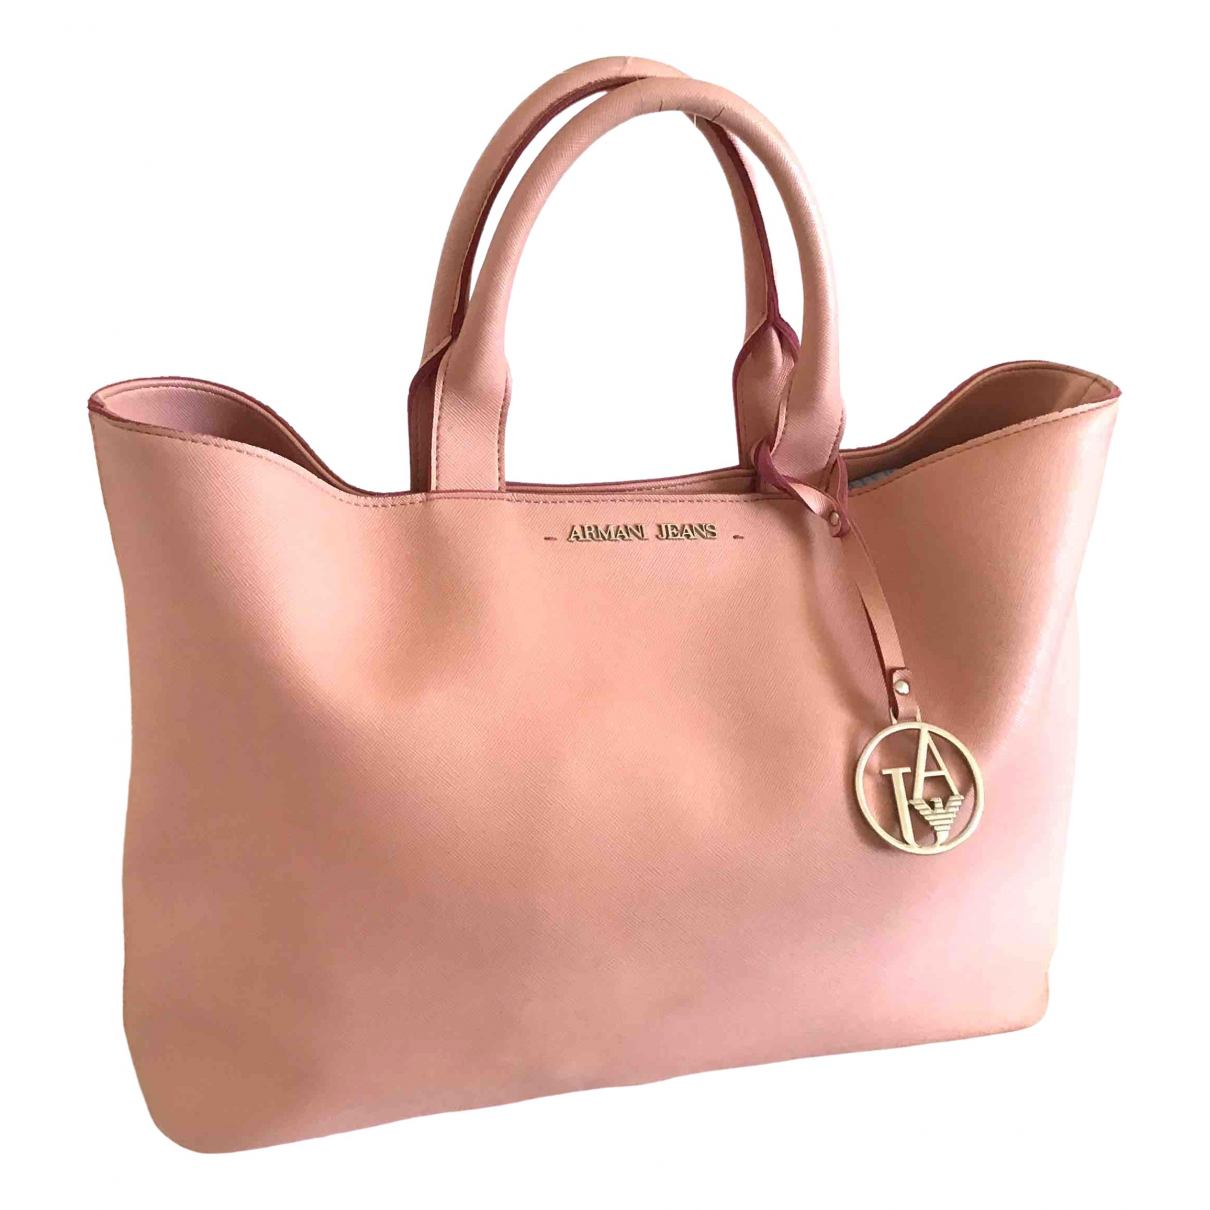 Armani Jeans \N Pink Leather handbag for Women \N